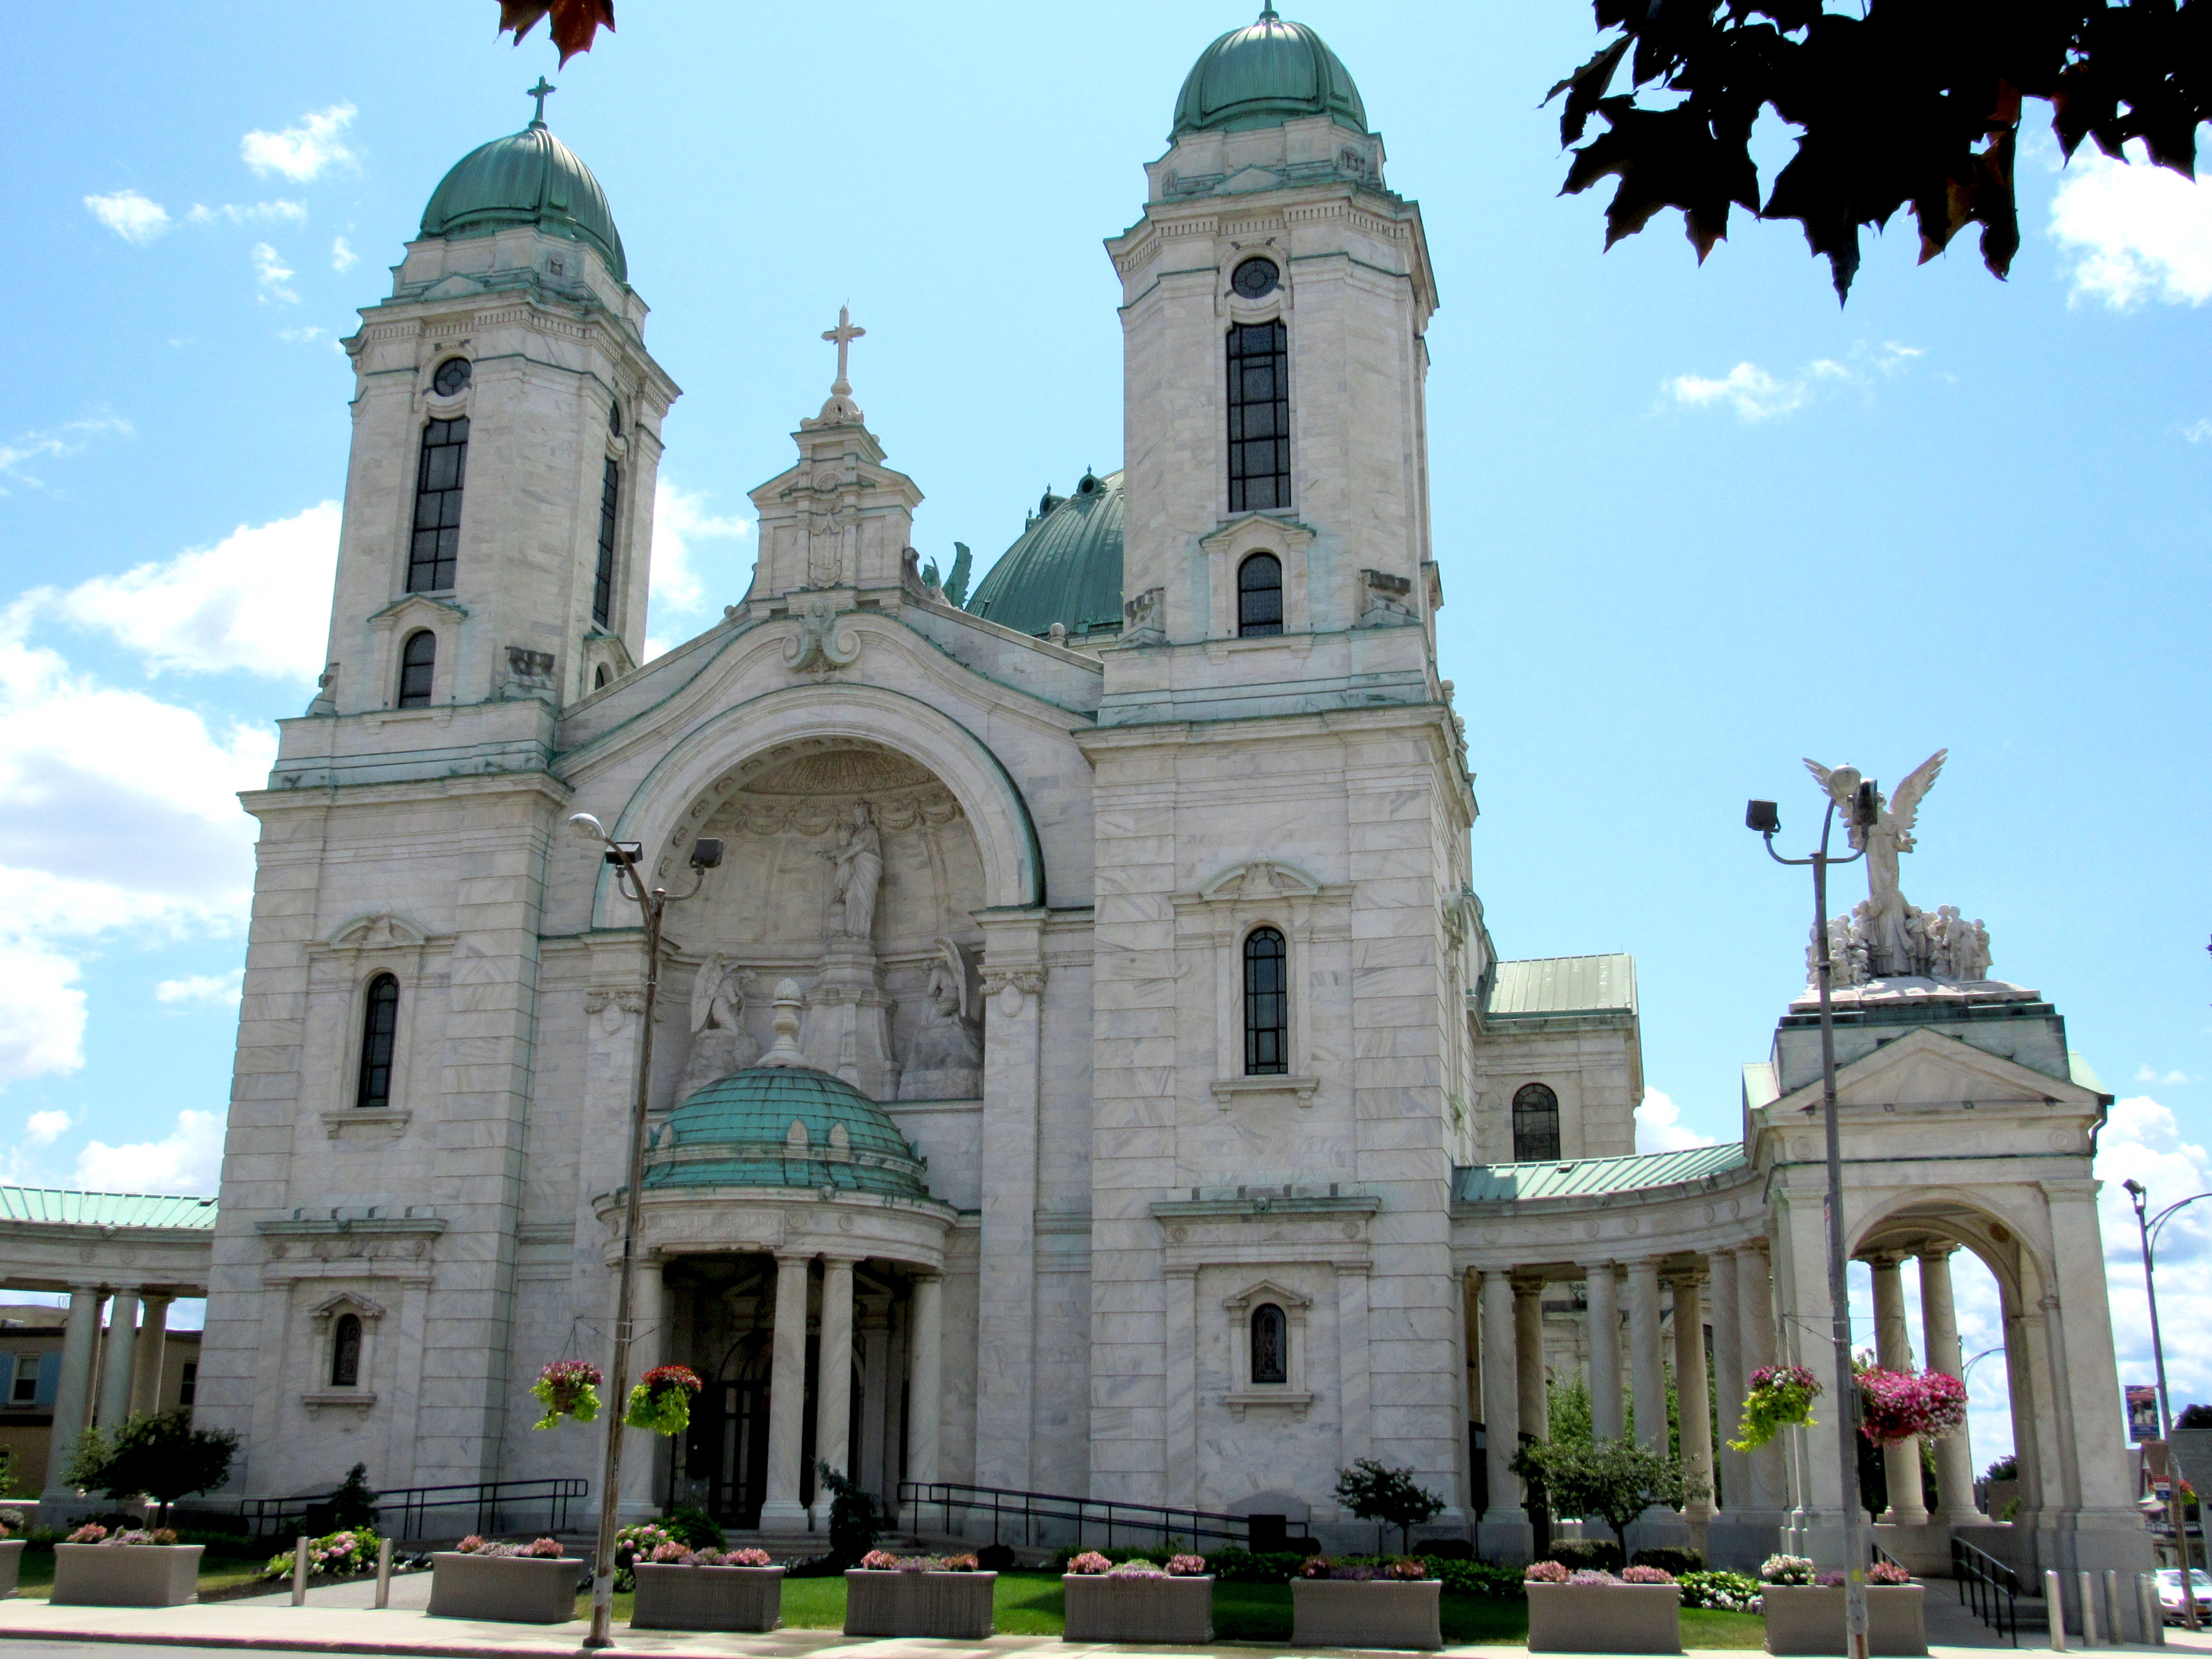 Basilica of Our Lady of Victory